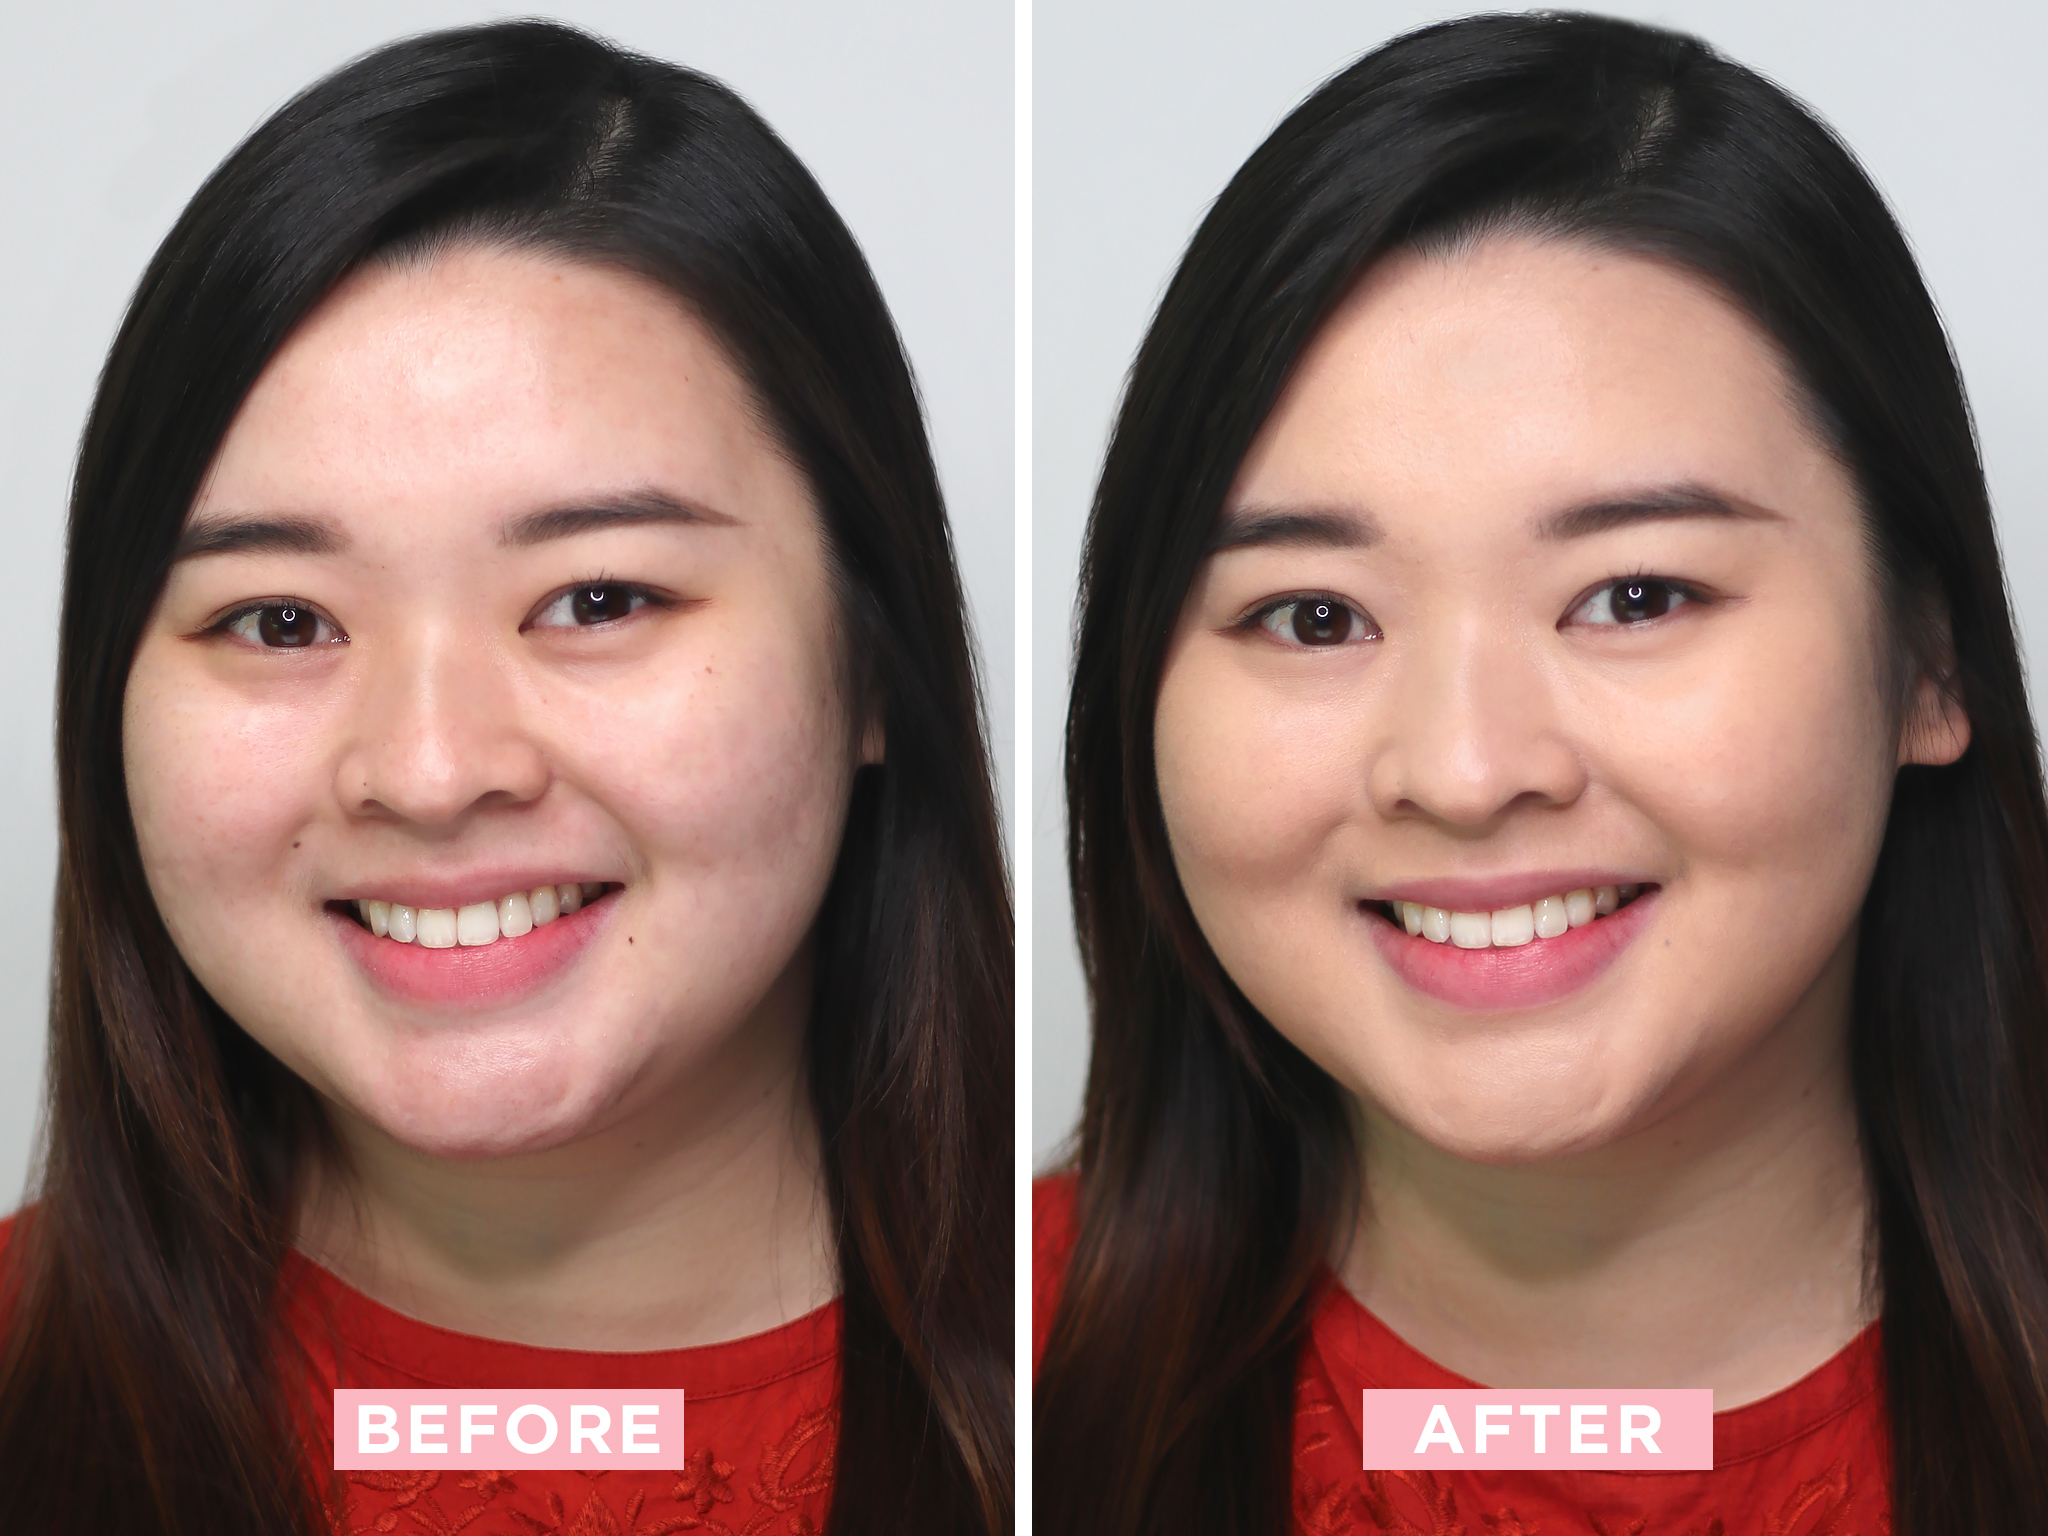 The Ultimate Guide To Face Shops Cushions Bloom Matte Up Tint Shop As Popular Dewy Look Is Its Last Thing Any Person With Oily Skin Would Want Something Thatll Actually Increase Grease On Purpose